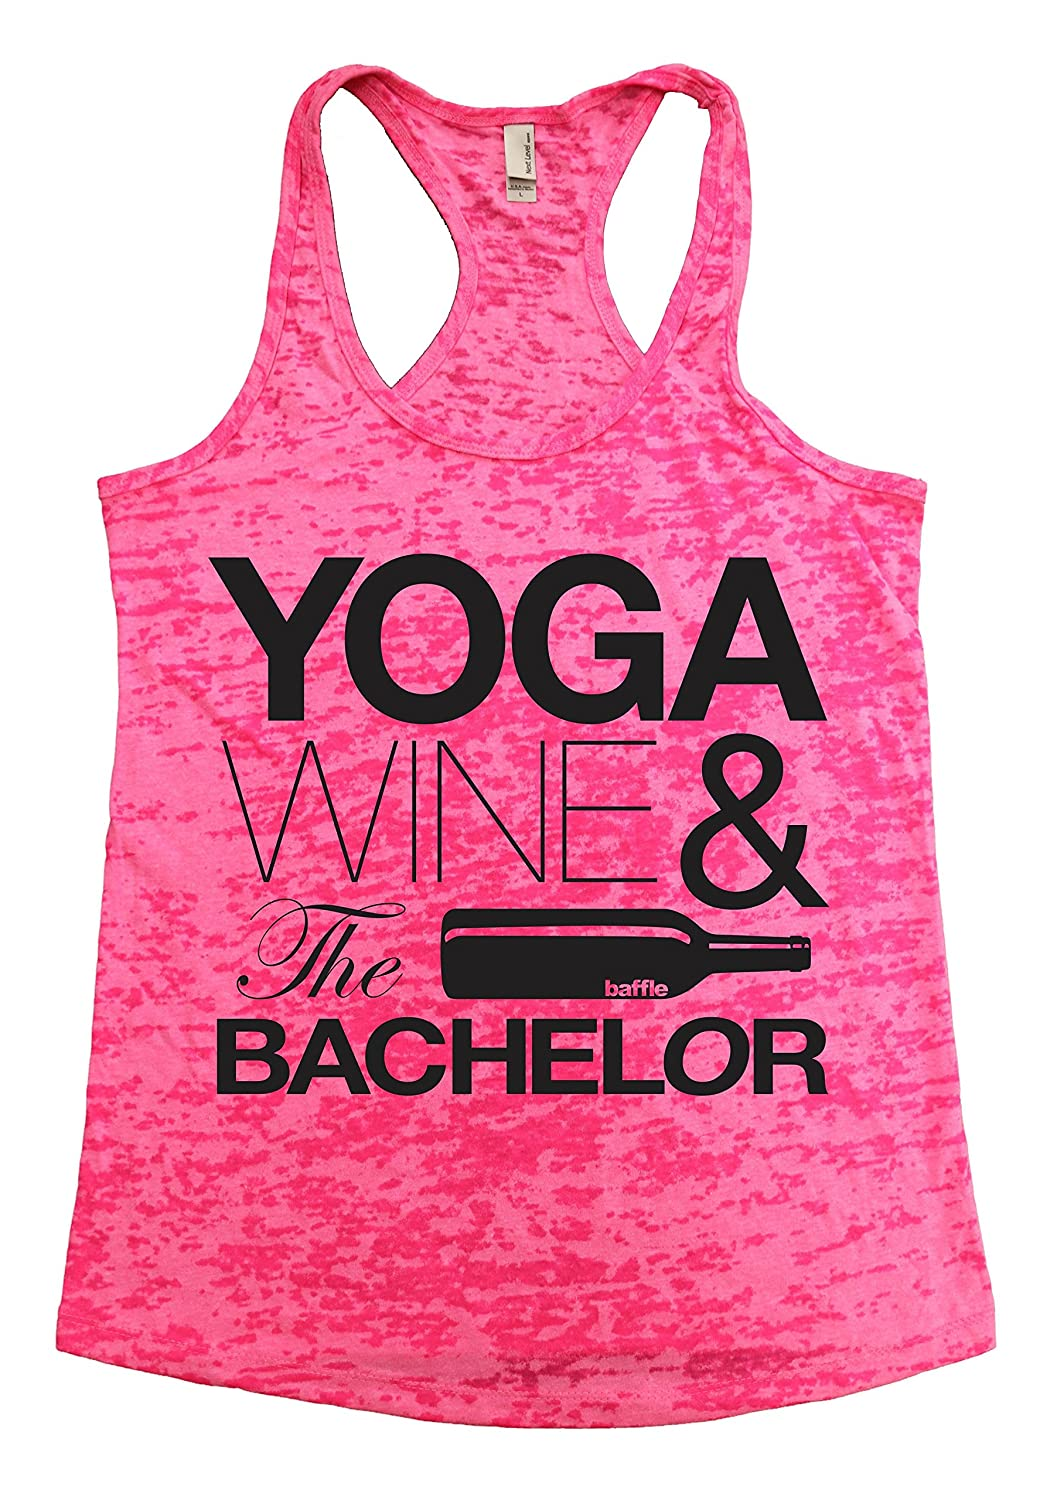 Baffle Active / Yoga, Wine & The Bachelor (Women鈥檚 Burnout Racerback Tank Top, Available in 6 colors, Sizes S, M, L)